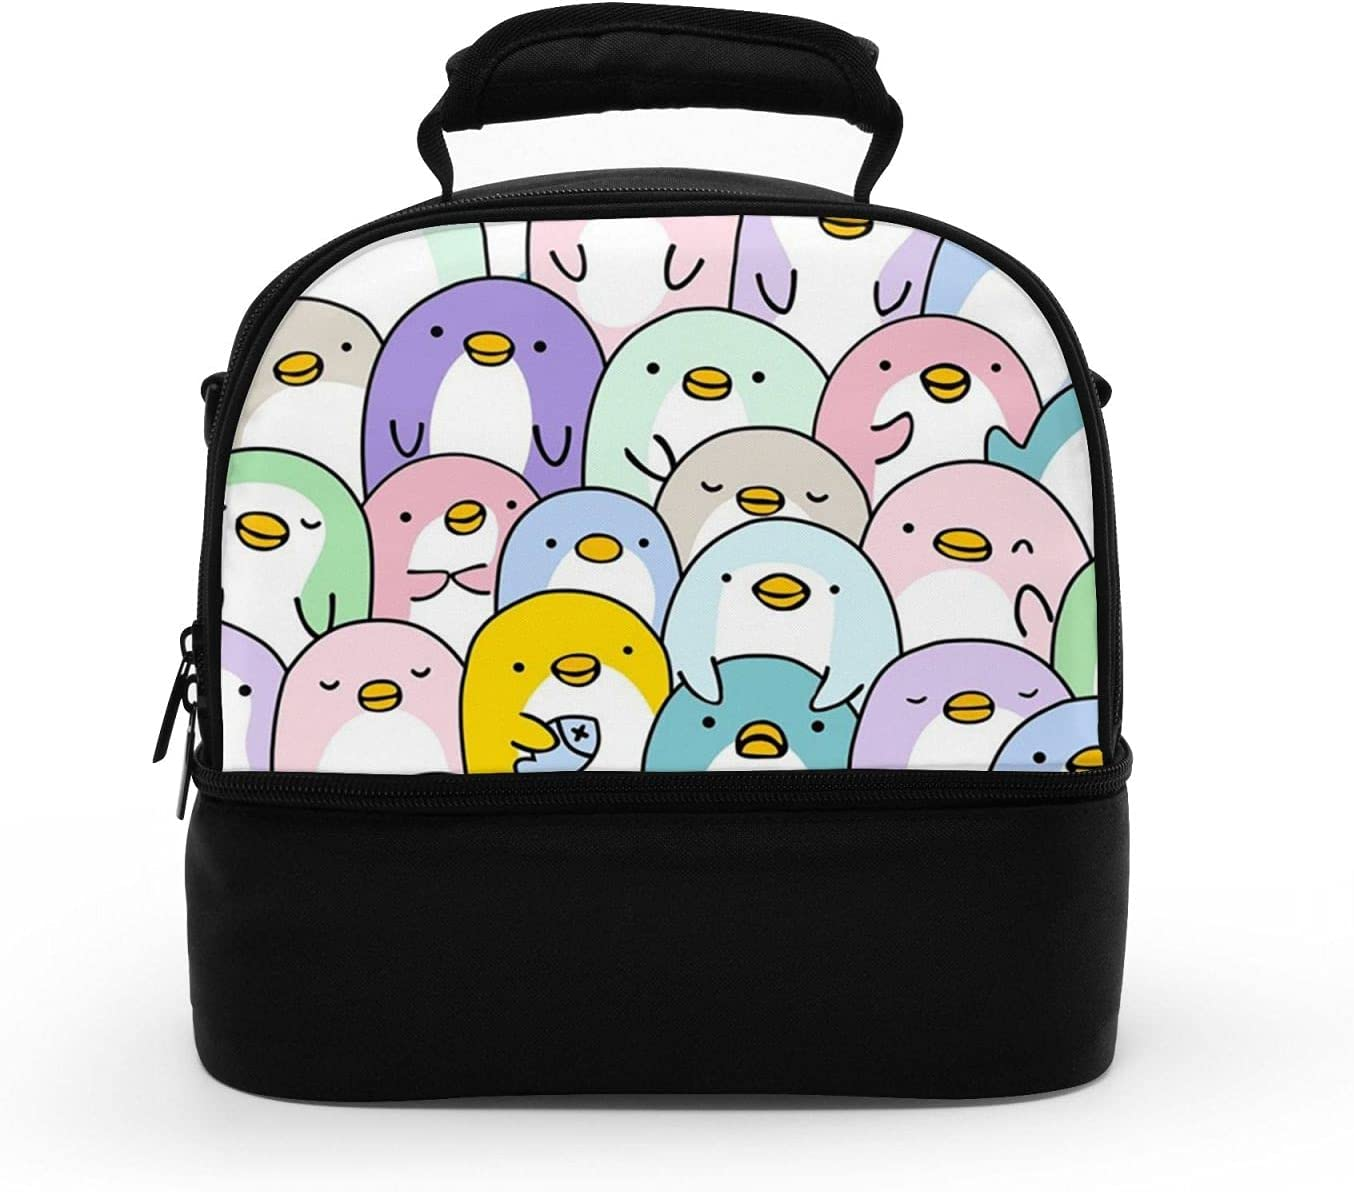 A surprise price is realized Work lunch bags Sale Special Price for women Penguin Portable Lunc Bag Kawaii Lunch